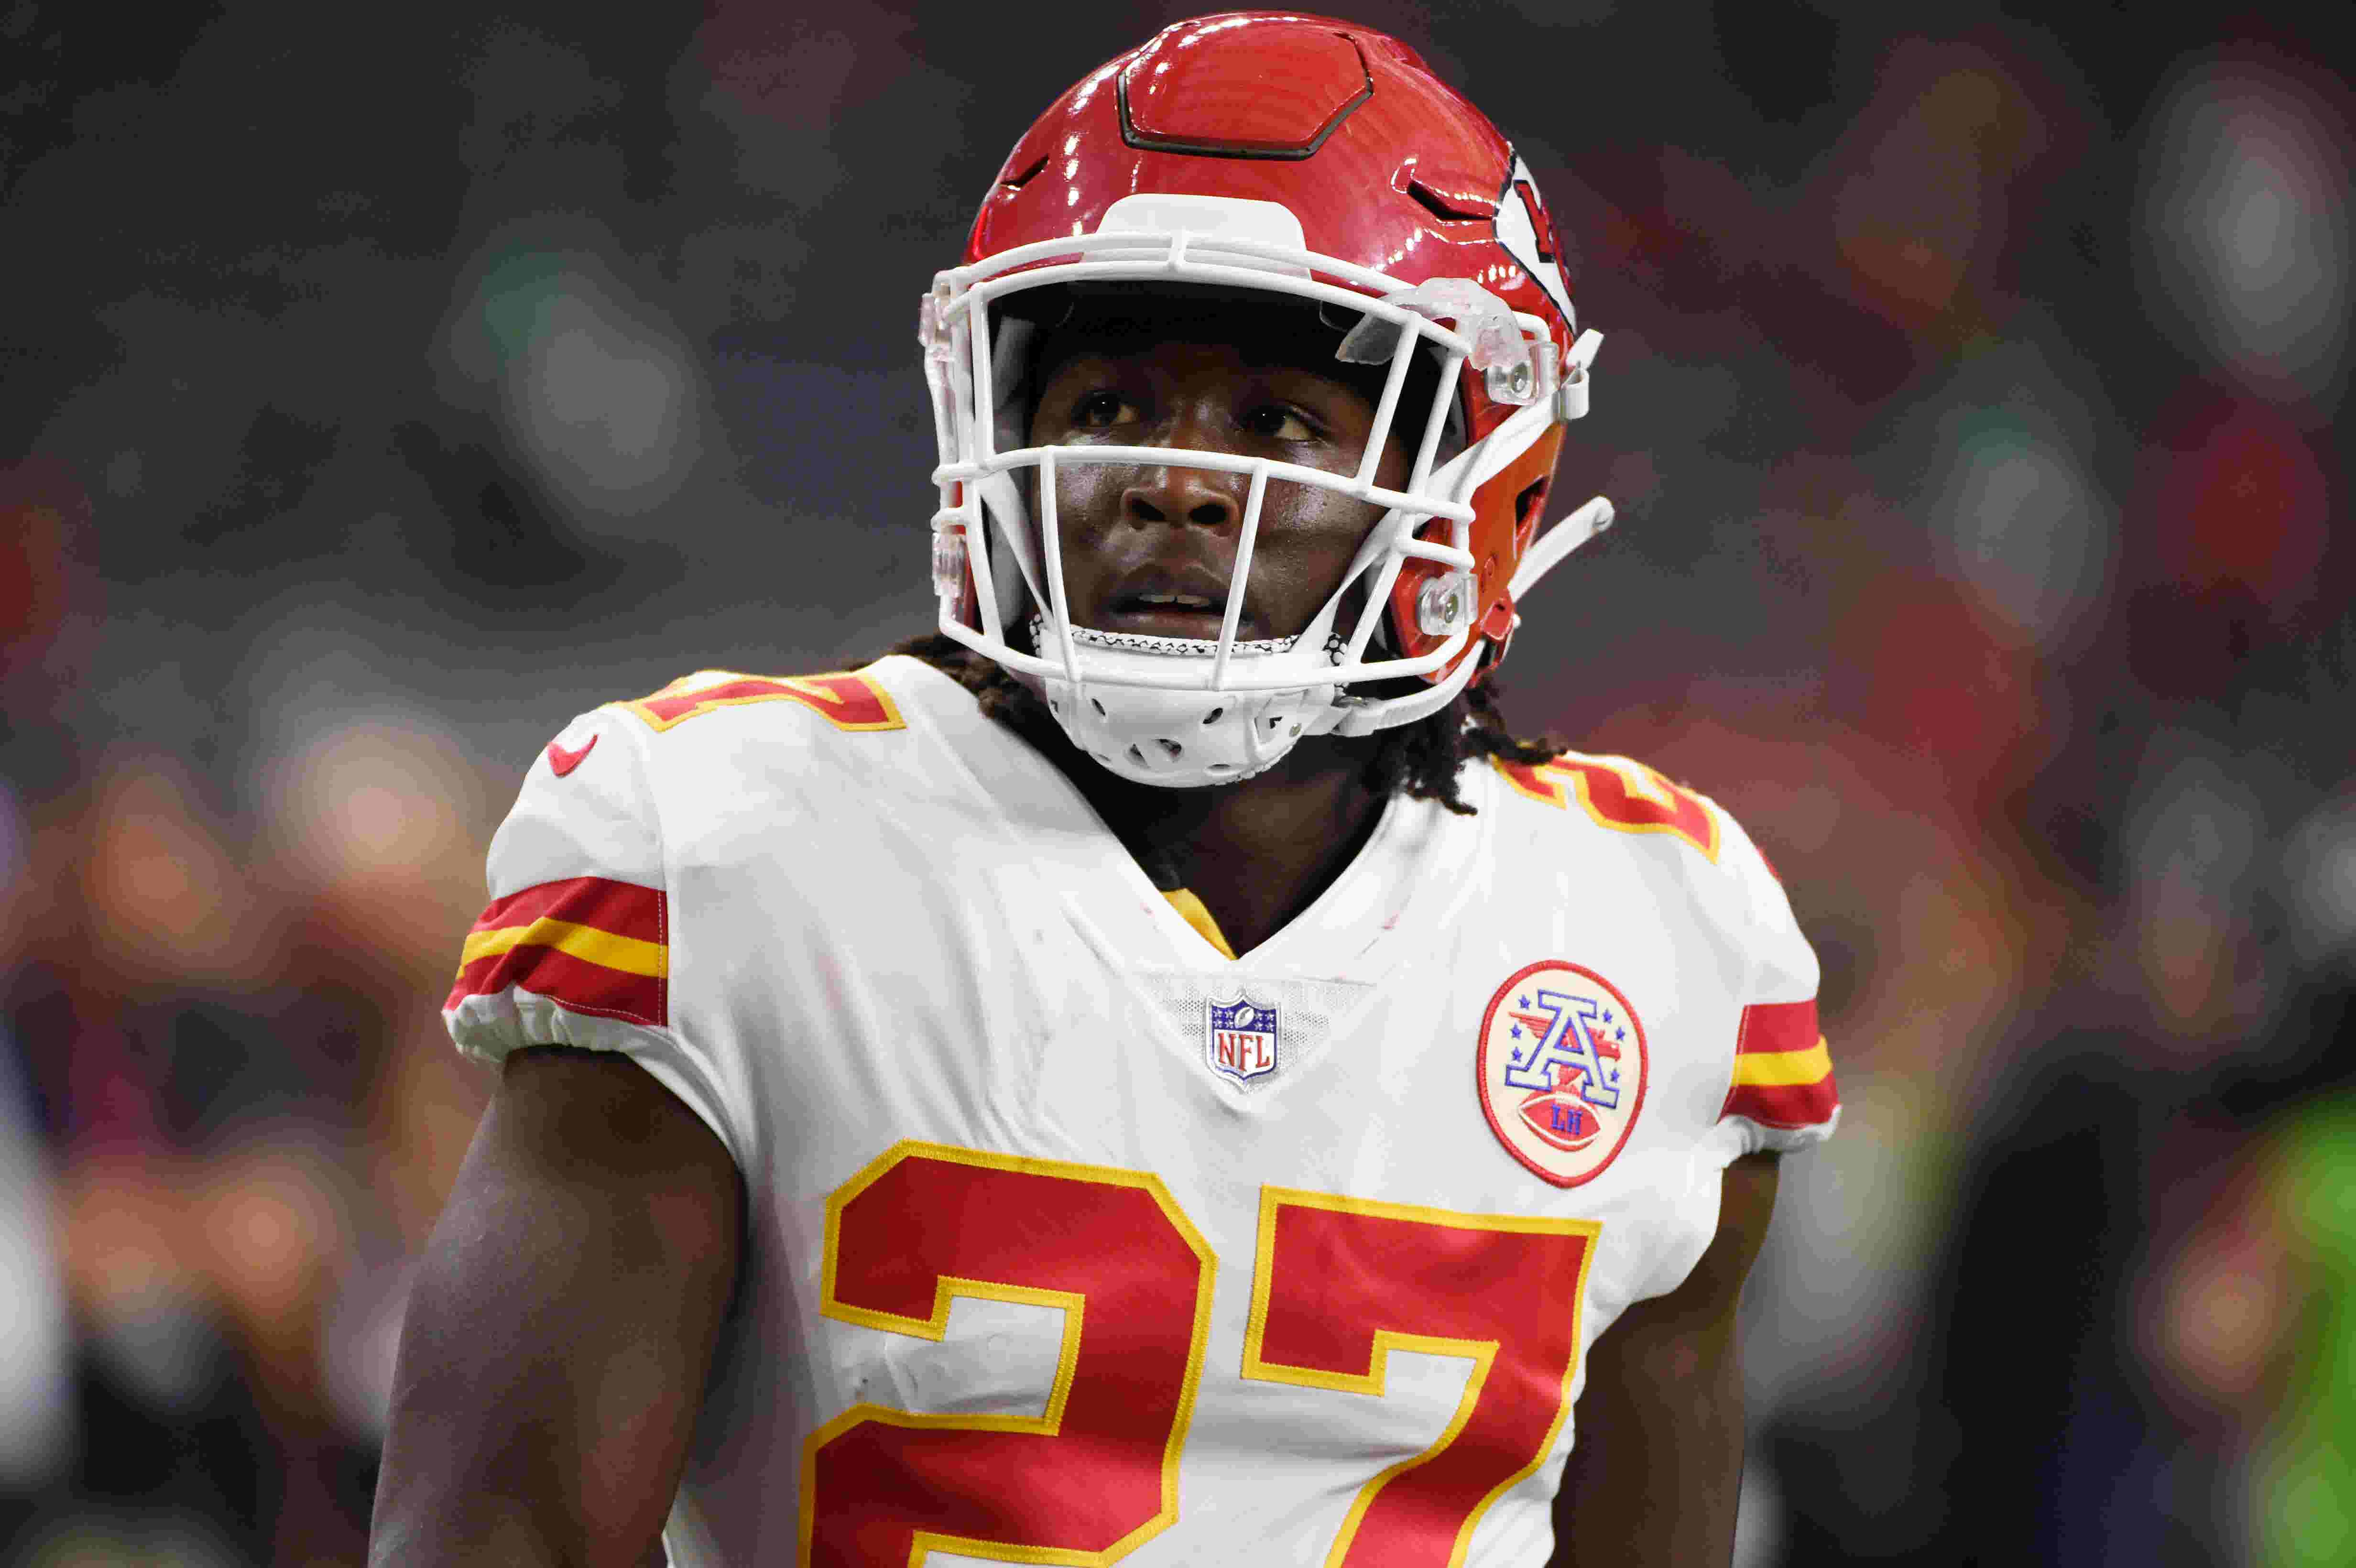 Family of former Kansas City Chiefs star Kareem Hunt has history of  criminal behavior ddf697ec8